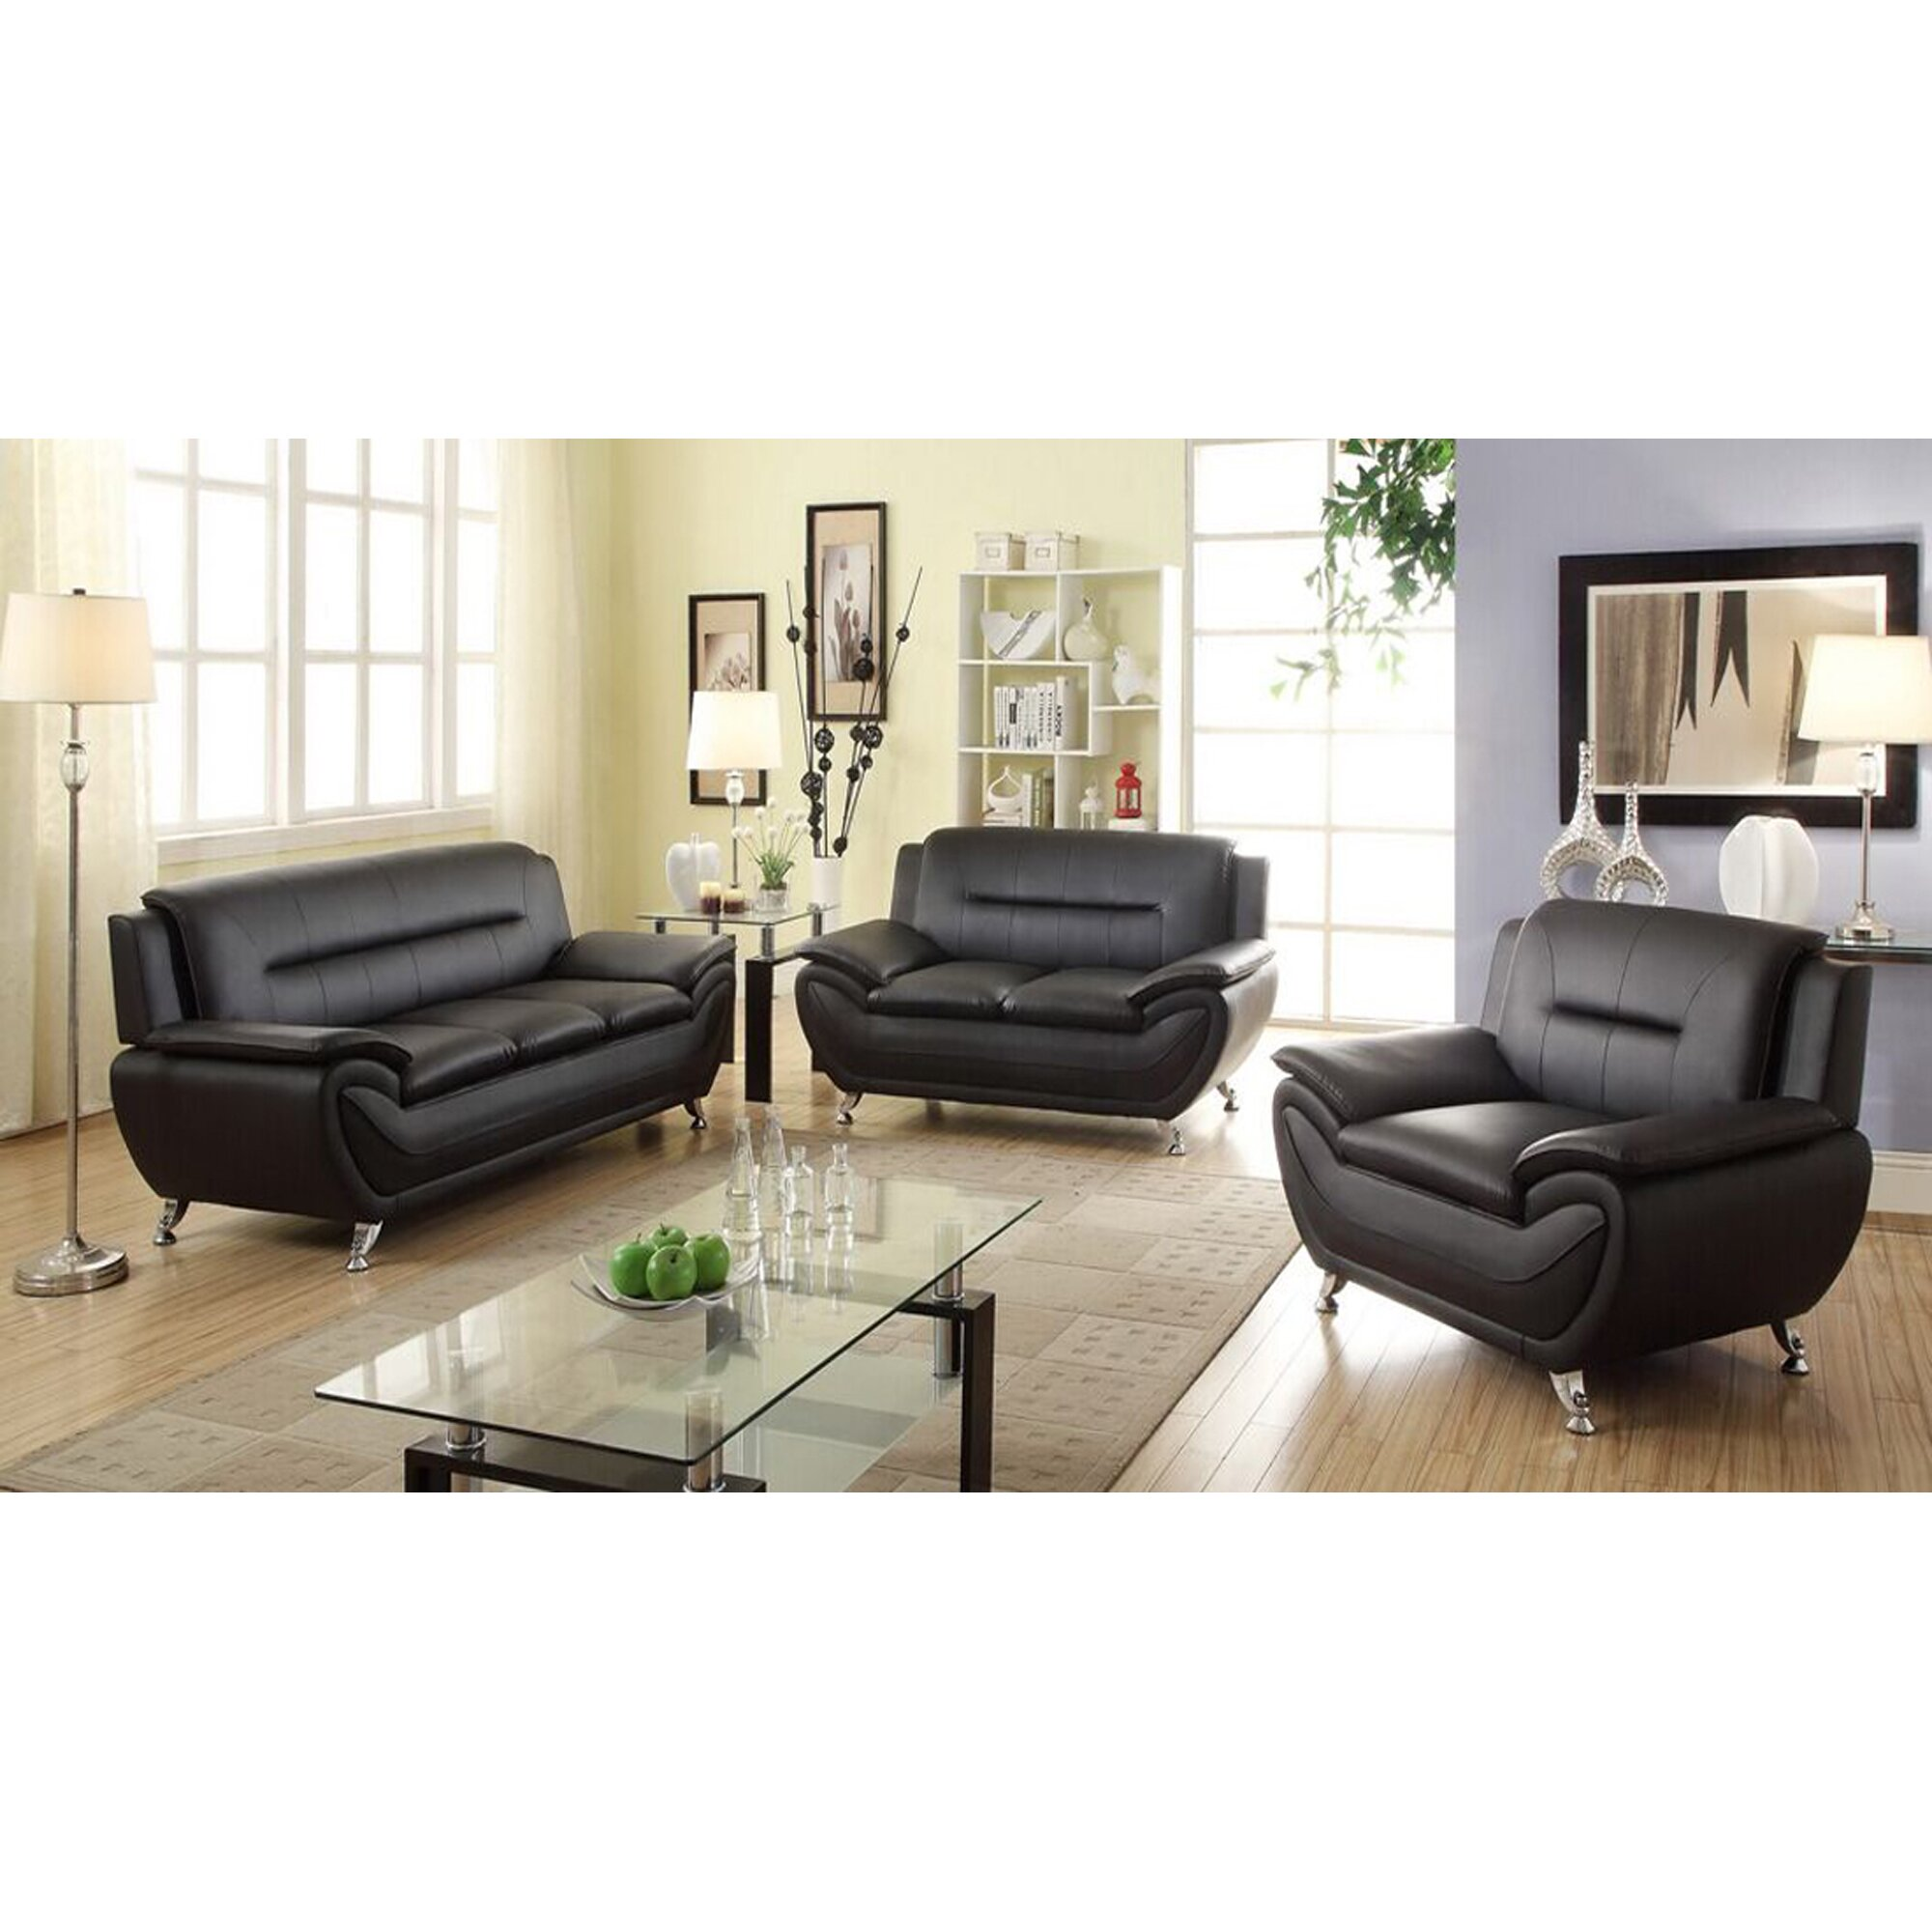 Modern Sofa Sets Living Room Living In Style Sophia 3 Piece Modern Living Room Sofa Set